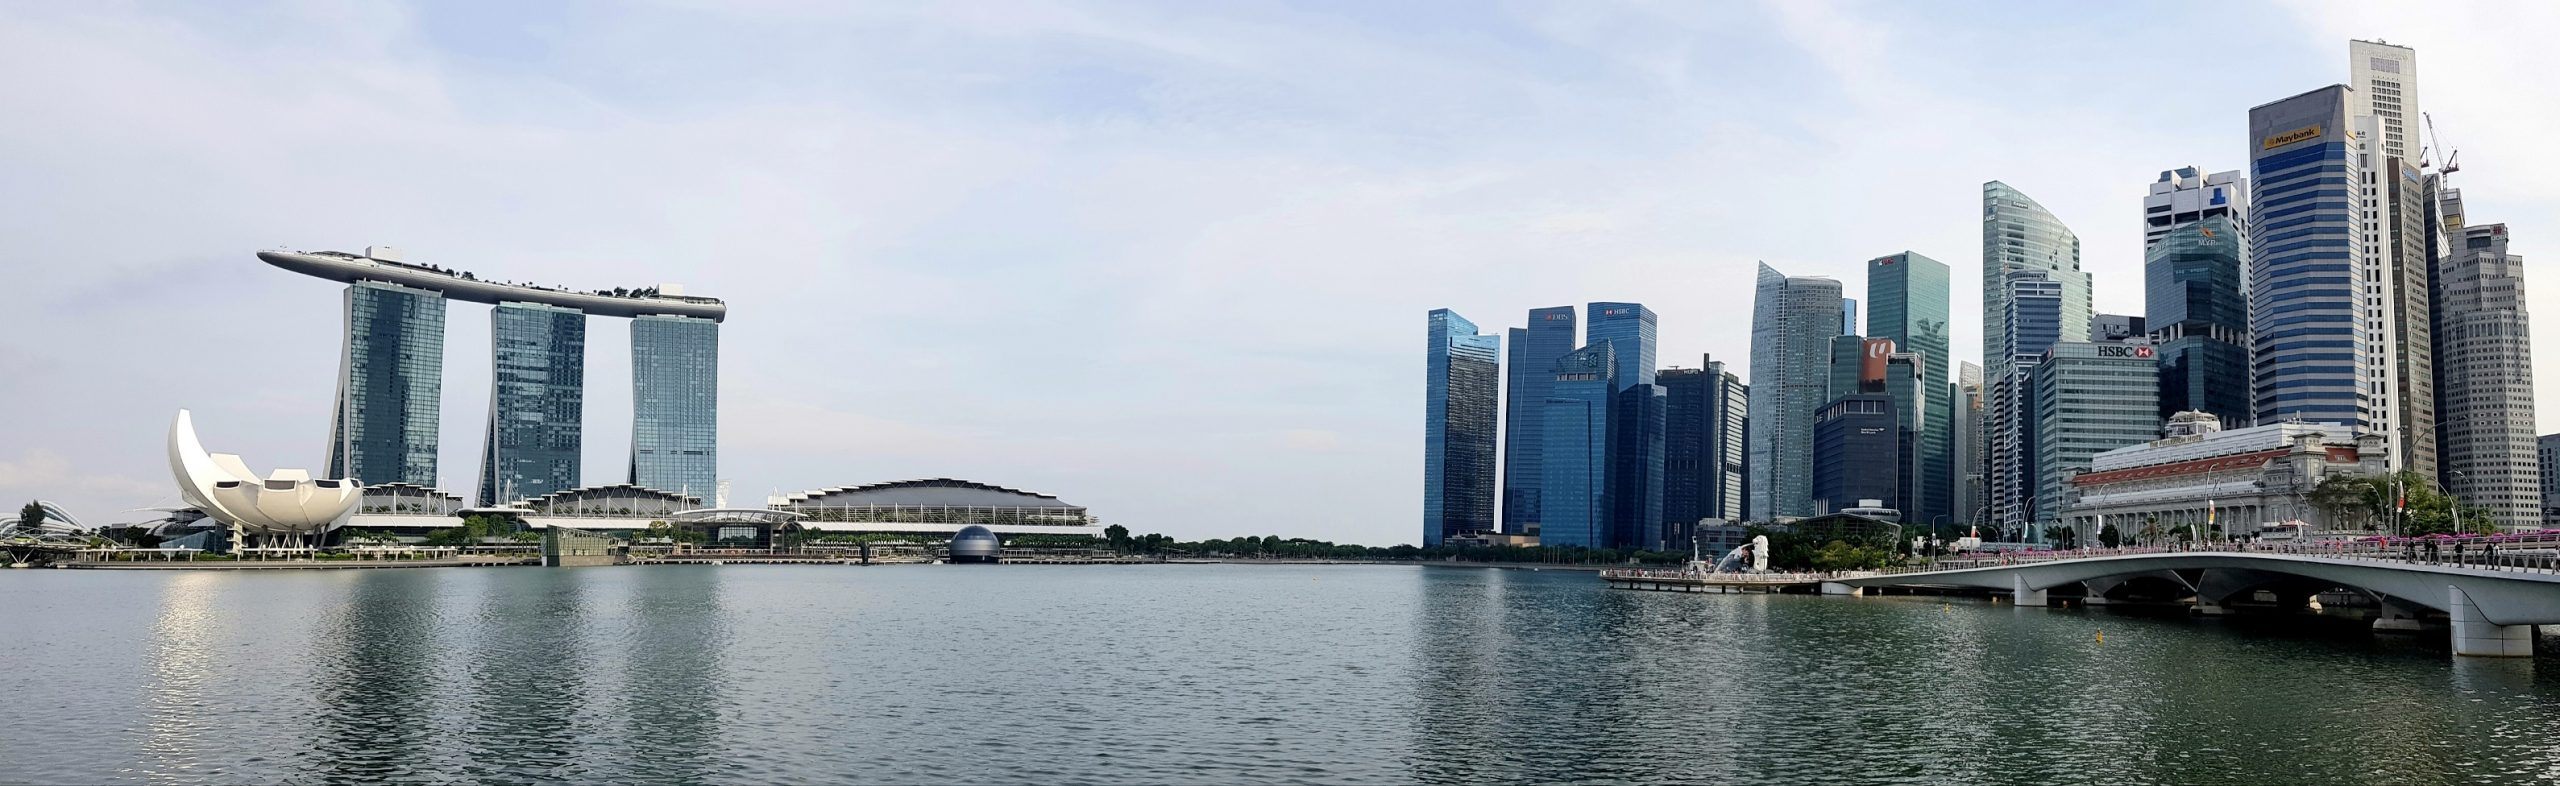 The Singapore skyline as seen from The Esplanade